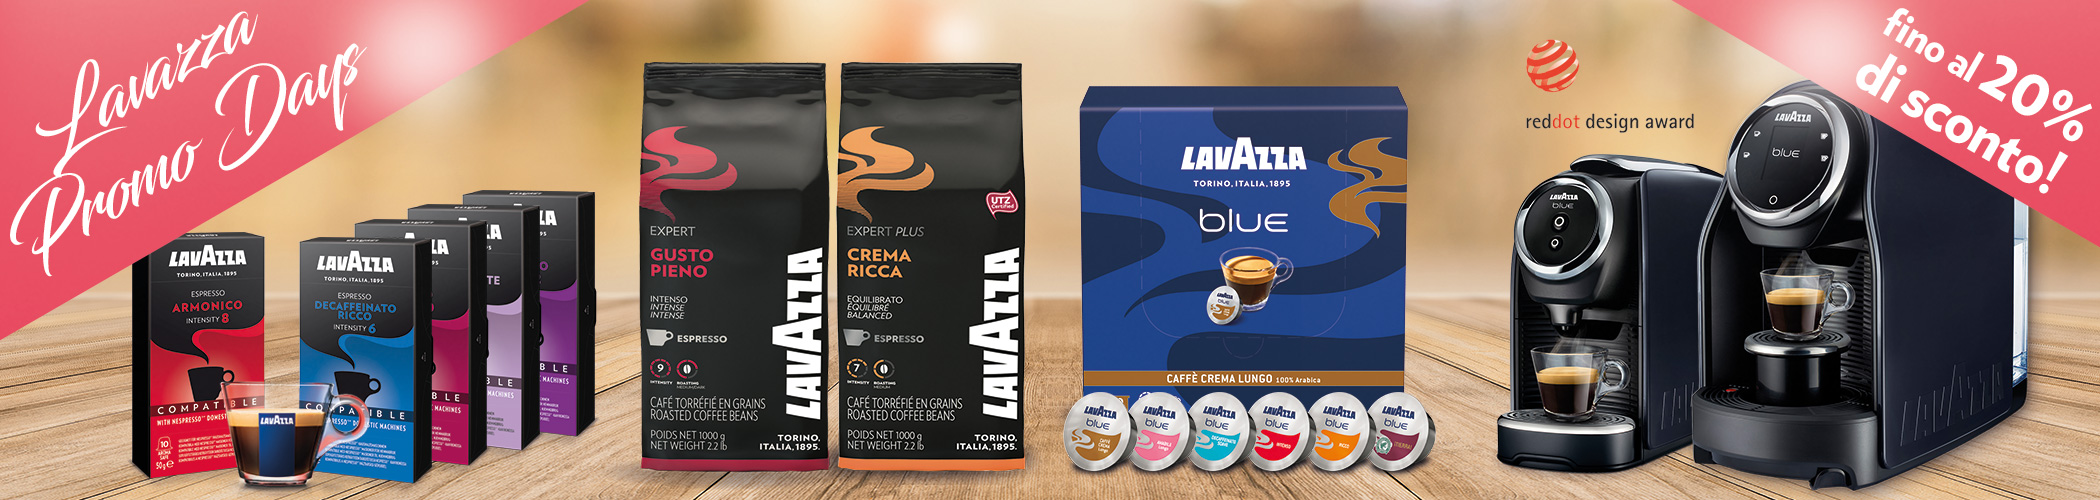 Lavazza_Days